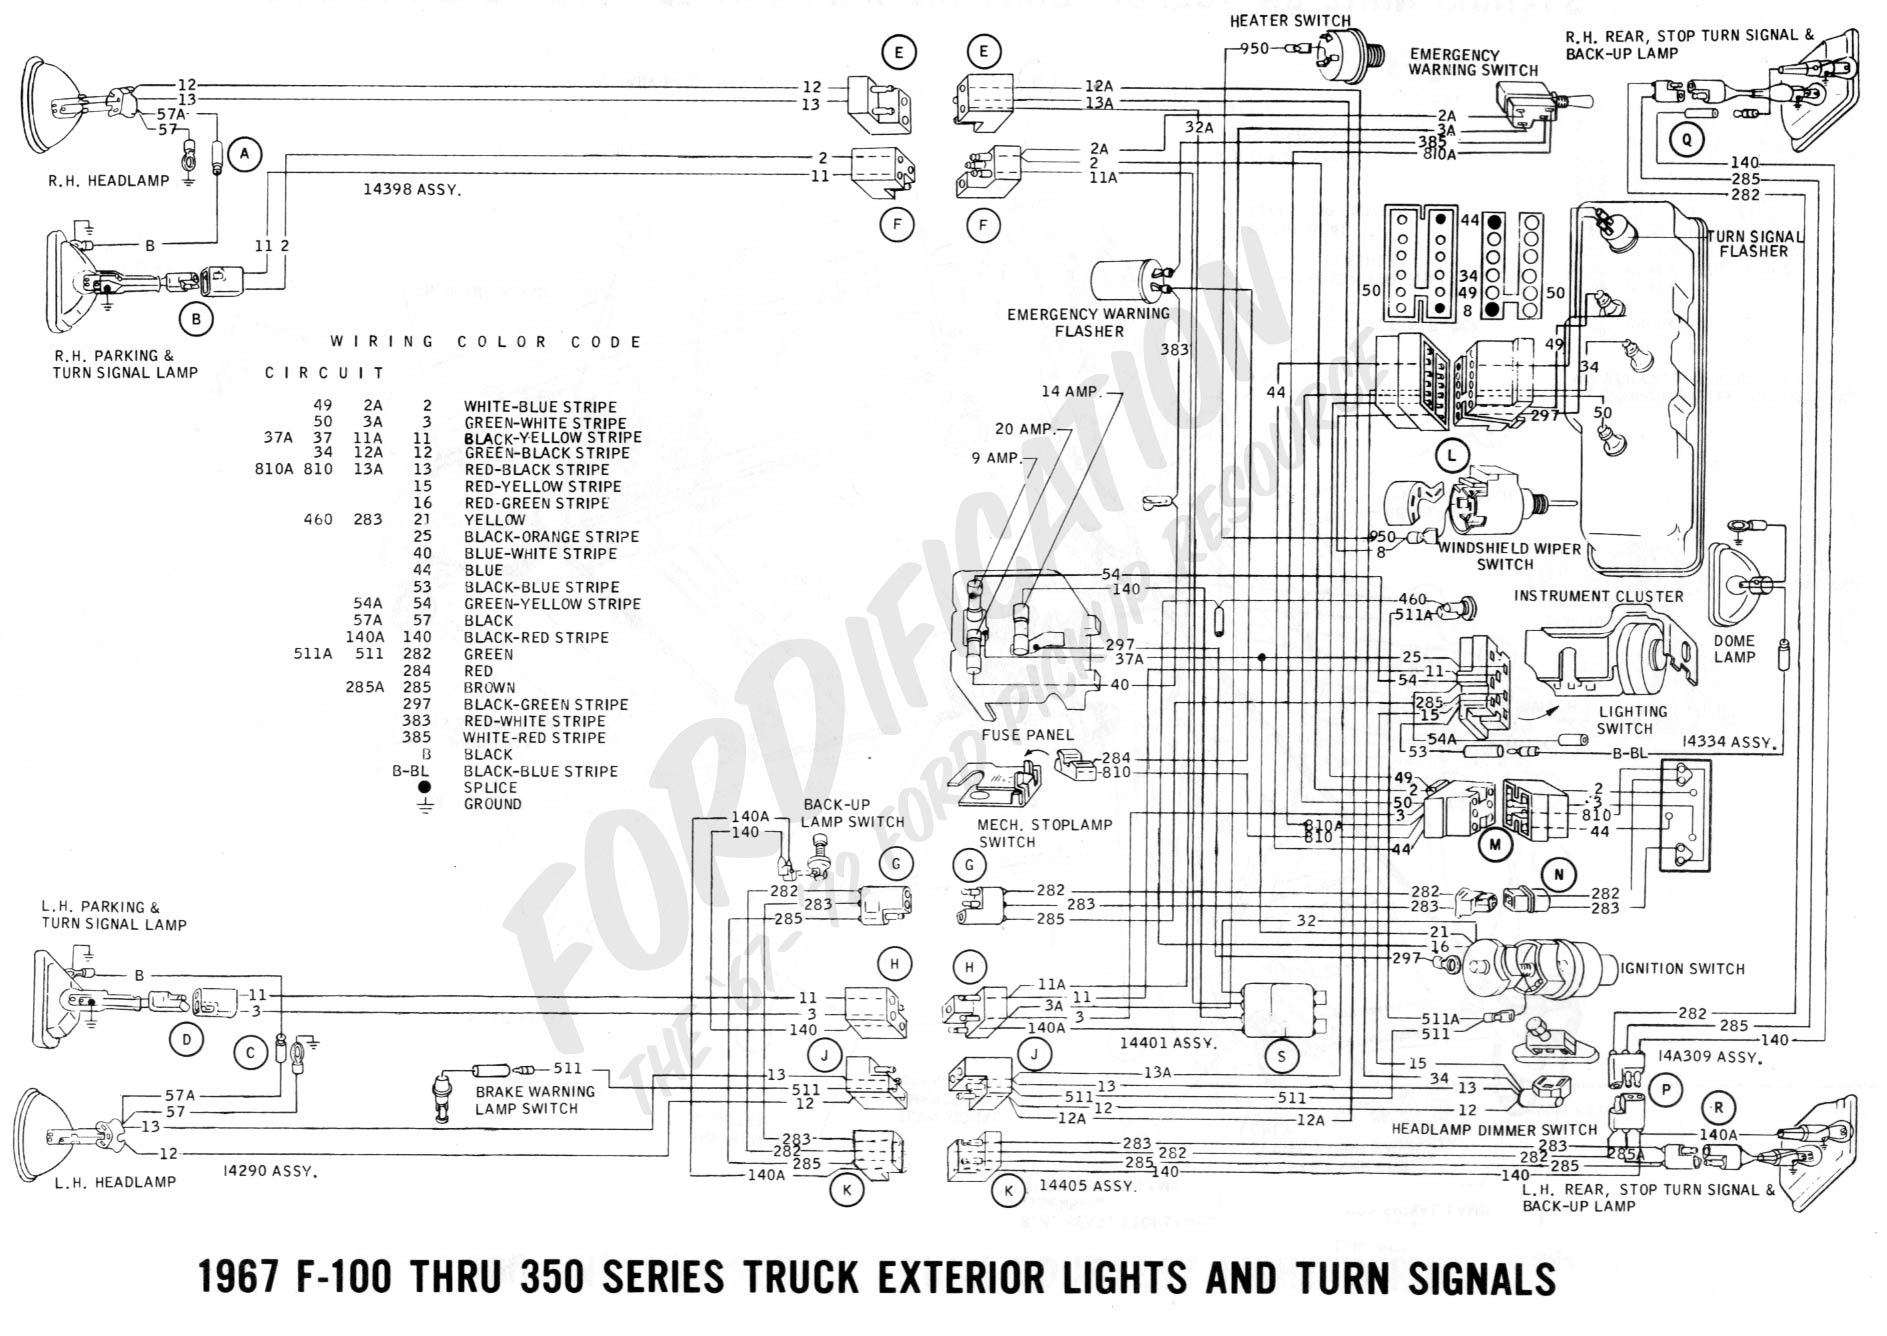 hight resolution of 1947 ford wiring diagram p9 schwabenschamanen de u2022ford truck wiring harness wiring diagram all data